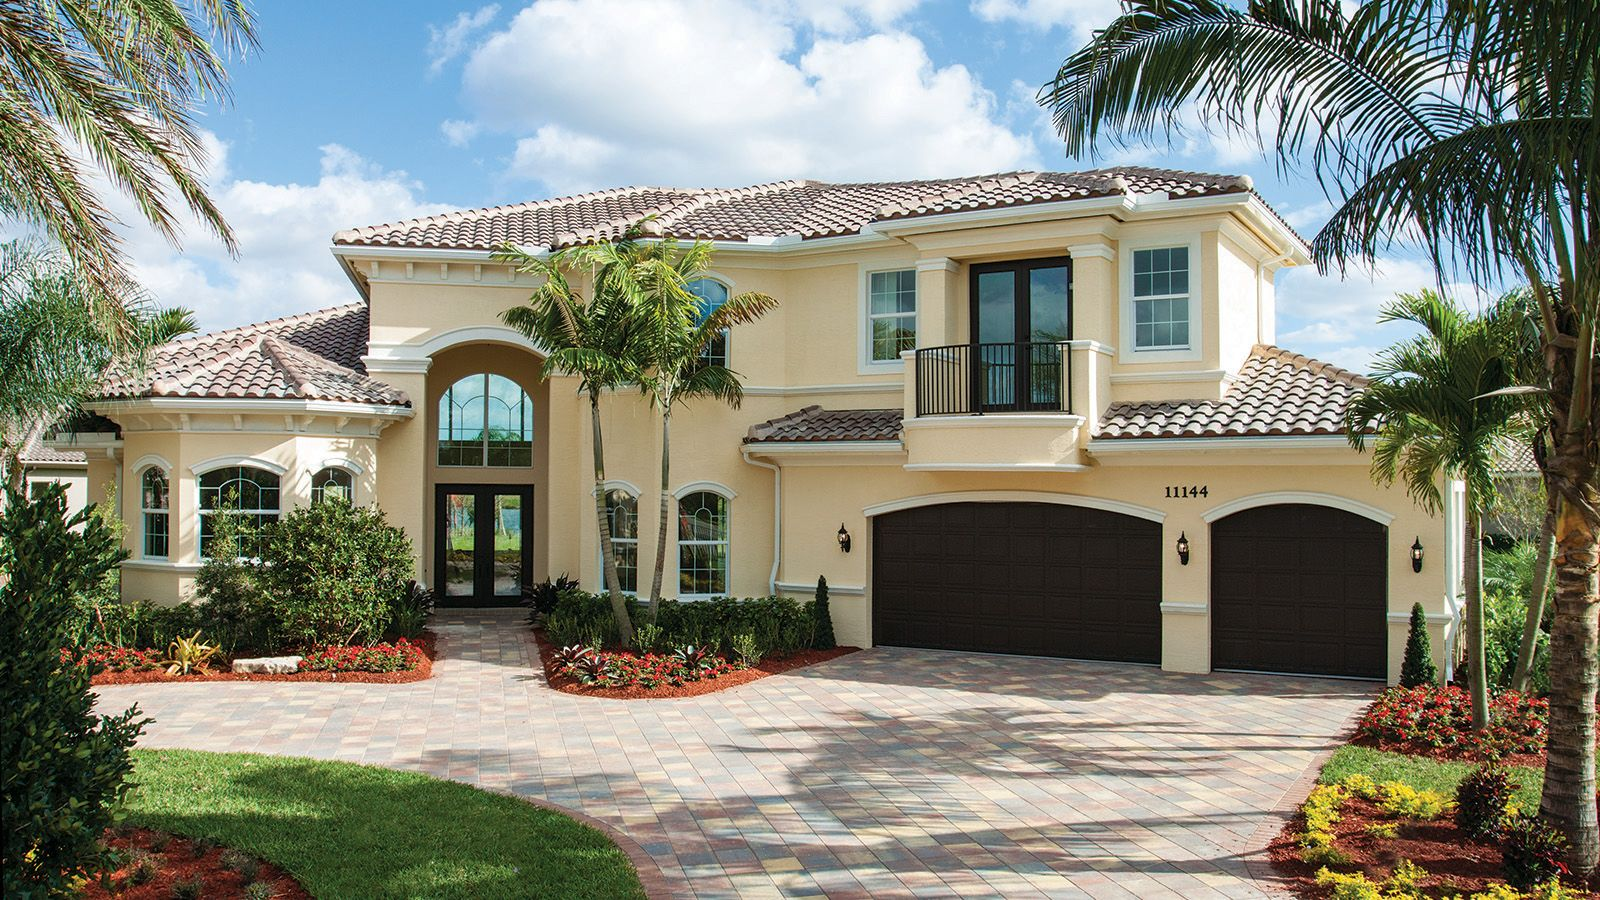 West palm beach real estate and homes for sale topix for New homes source